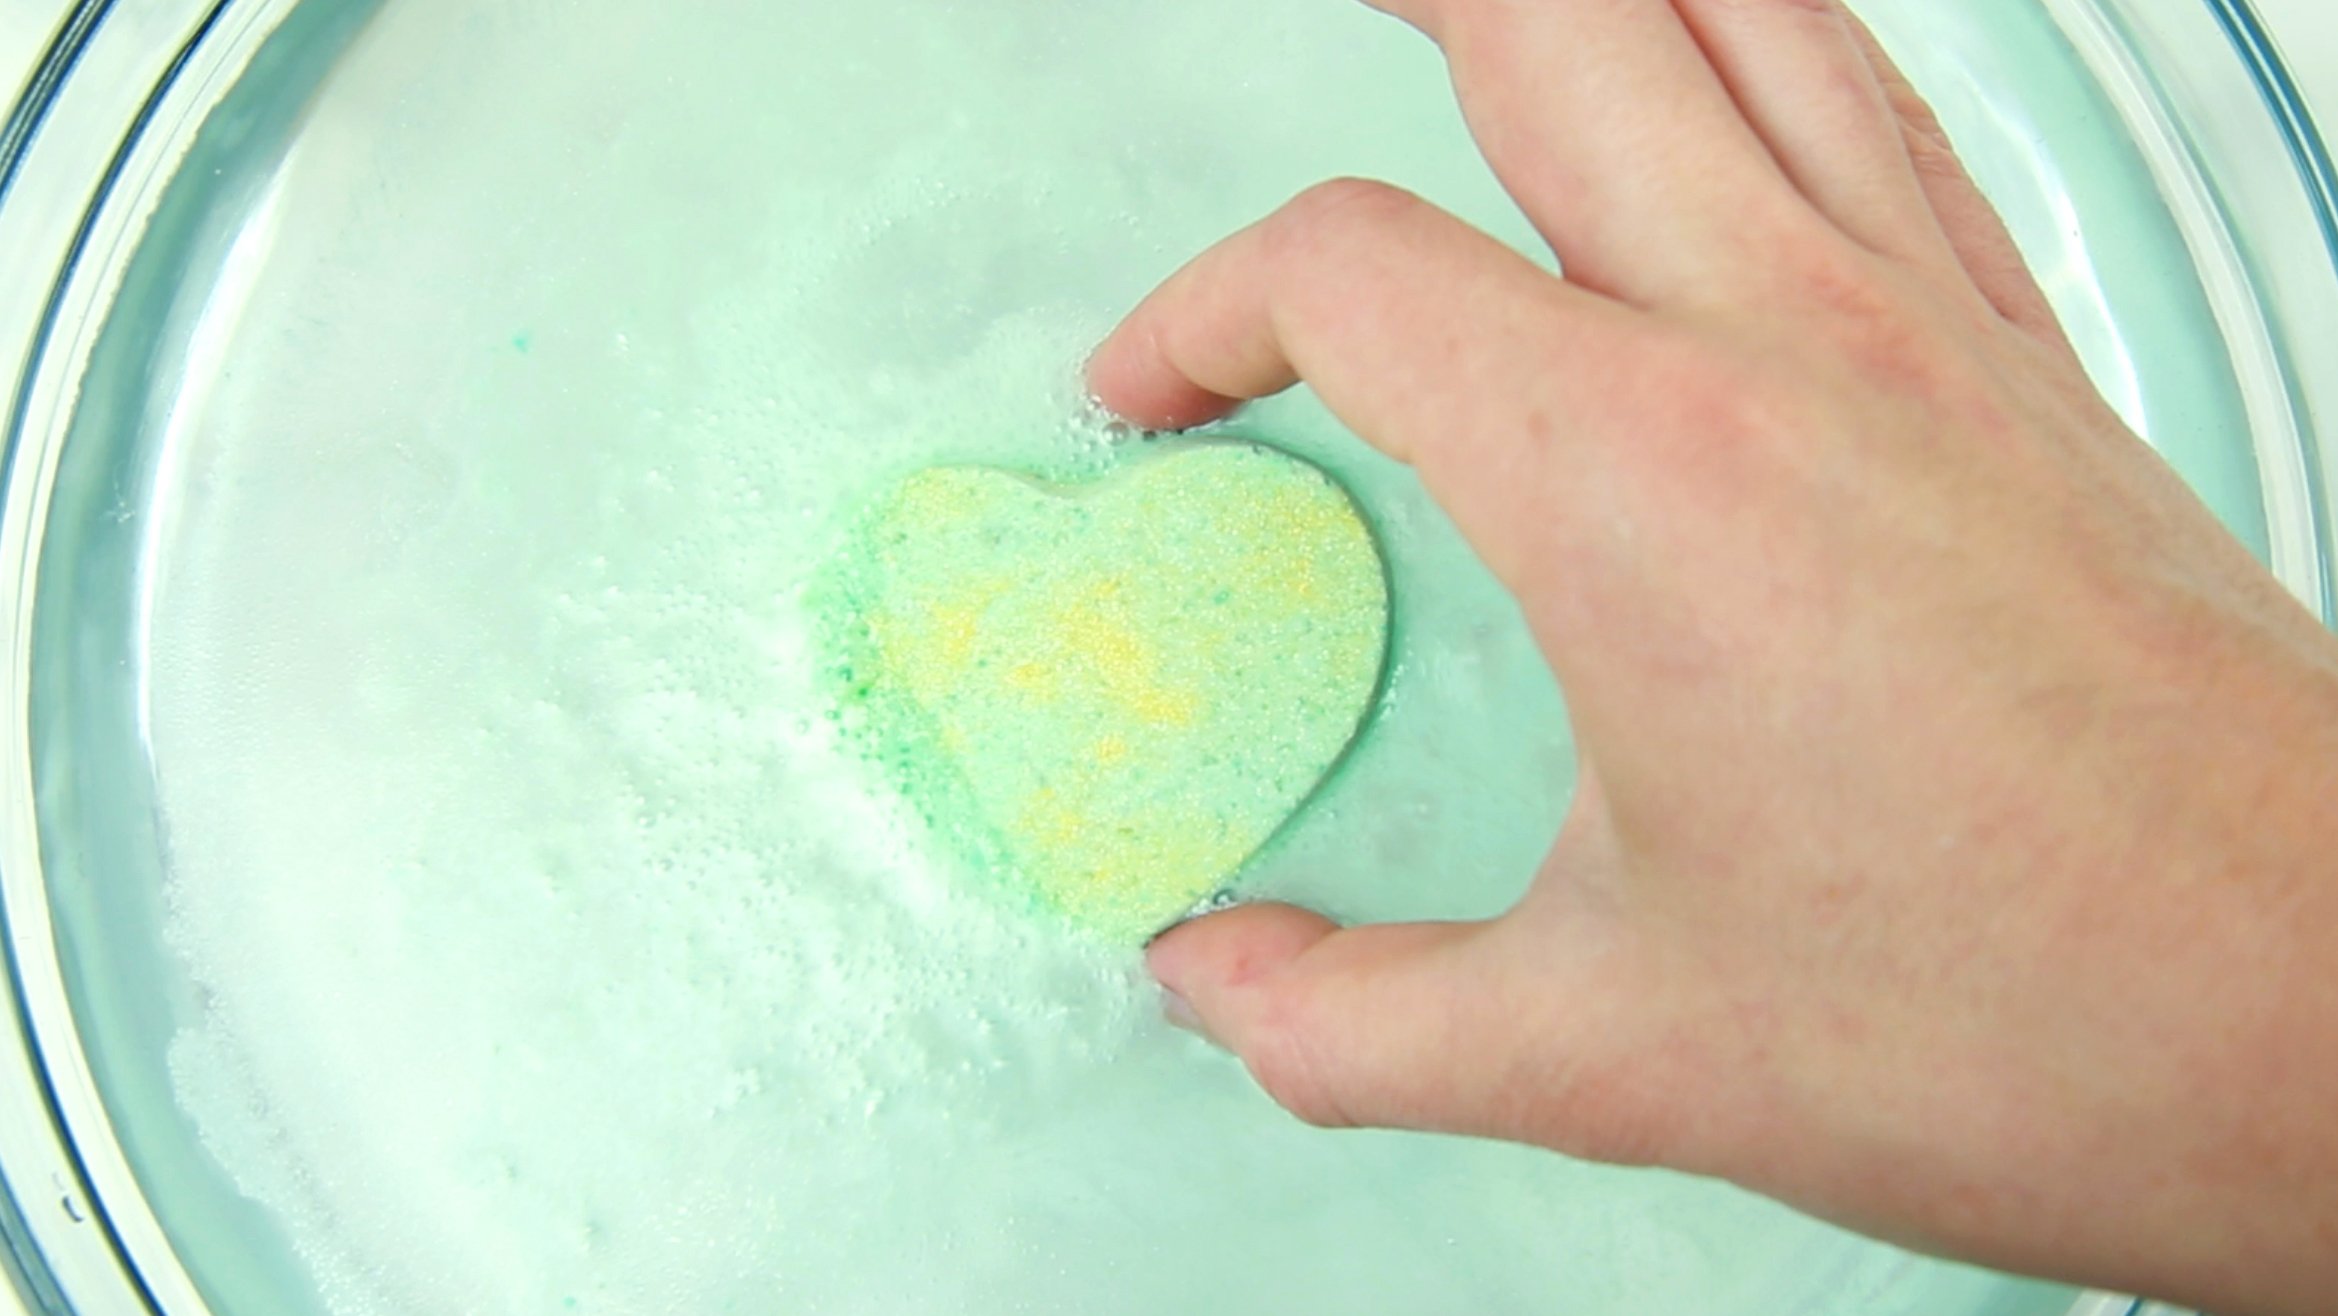 These DIY bath bombs will relieve your sinuses while making you super relaxed